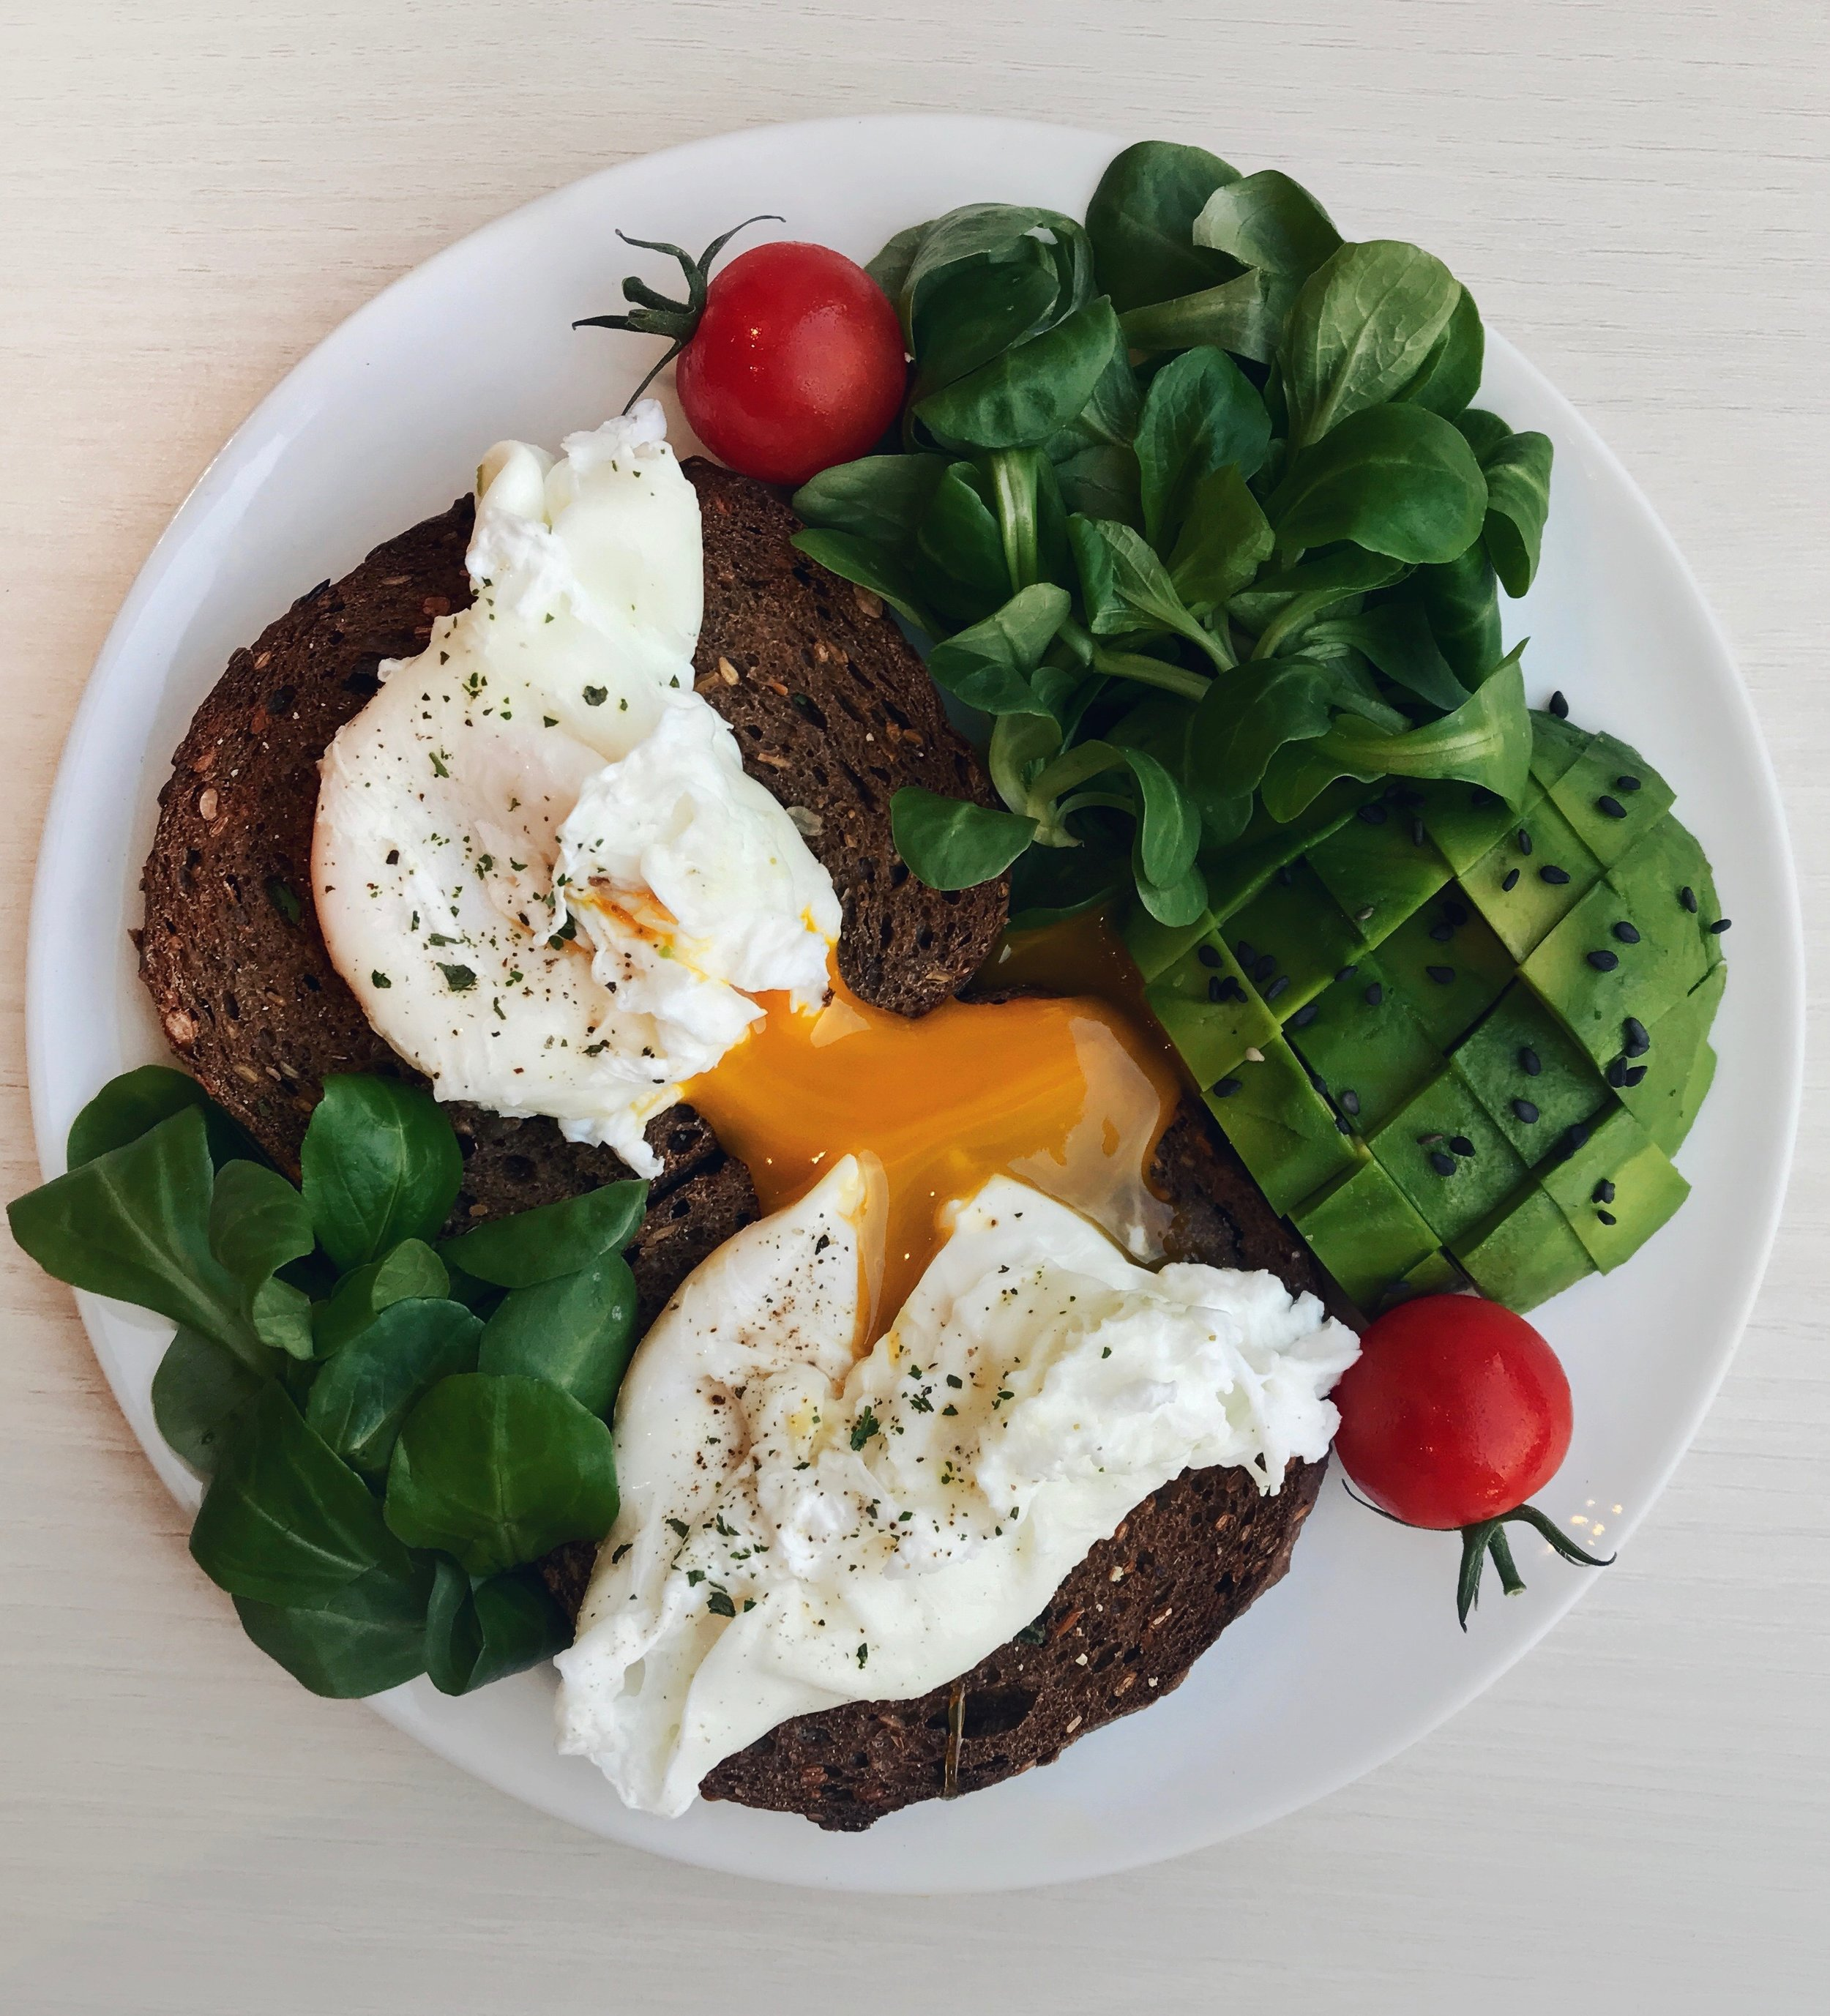 Poached Egg &Avocado Toasts - Toasted nordic bread topped with 2 poached eggs (cooked for about 3min in boiling water with a bit of lemon juice) +parsley +1/2 avocado +leafy greens + cherry tomatoes + black sesame seeds